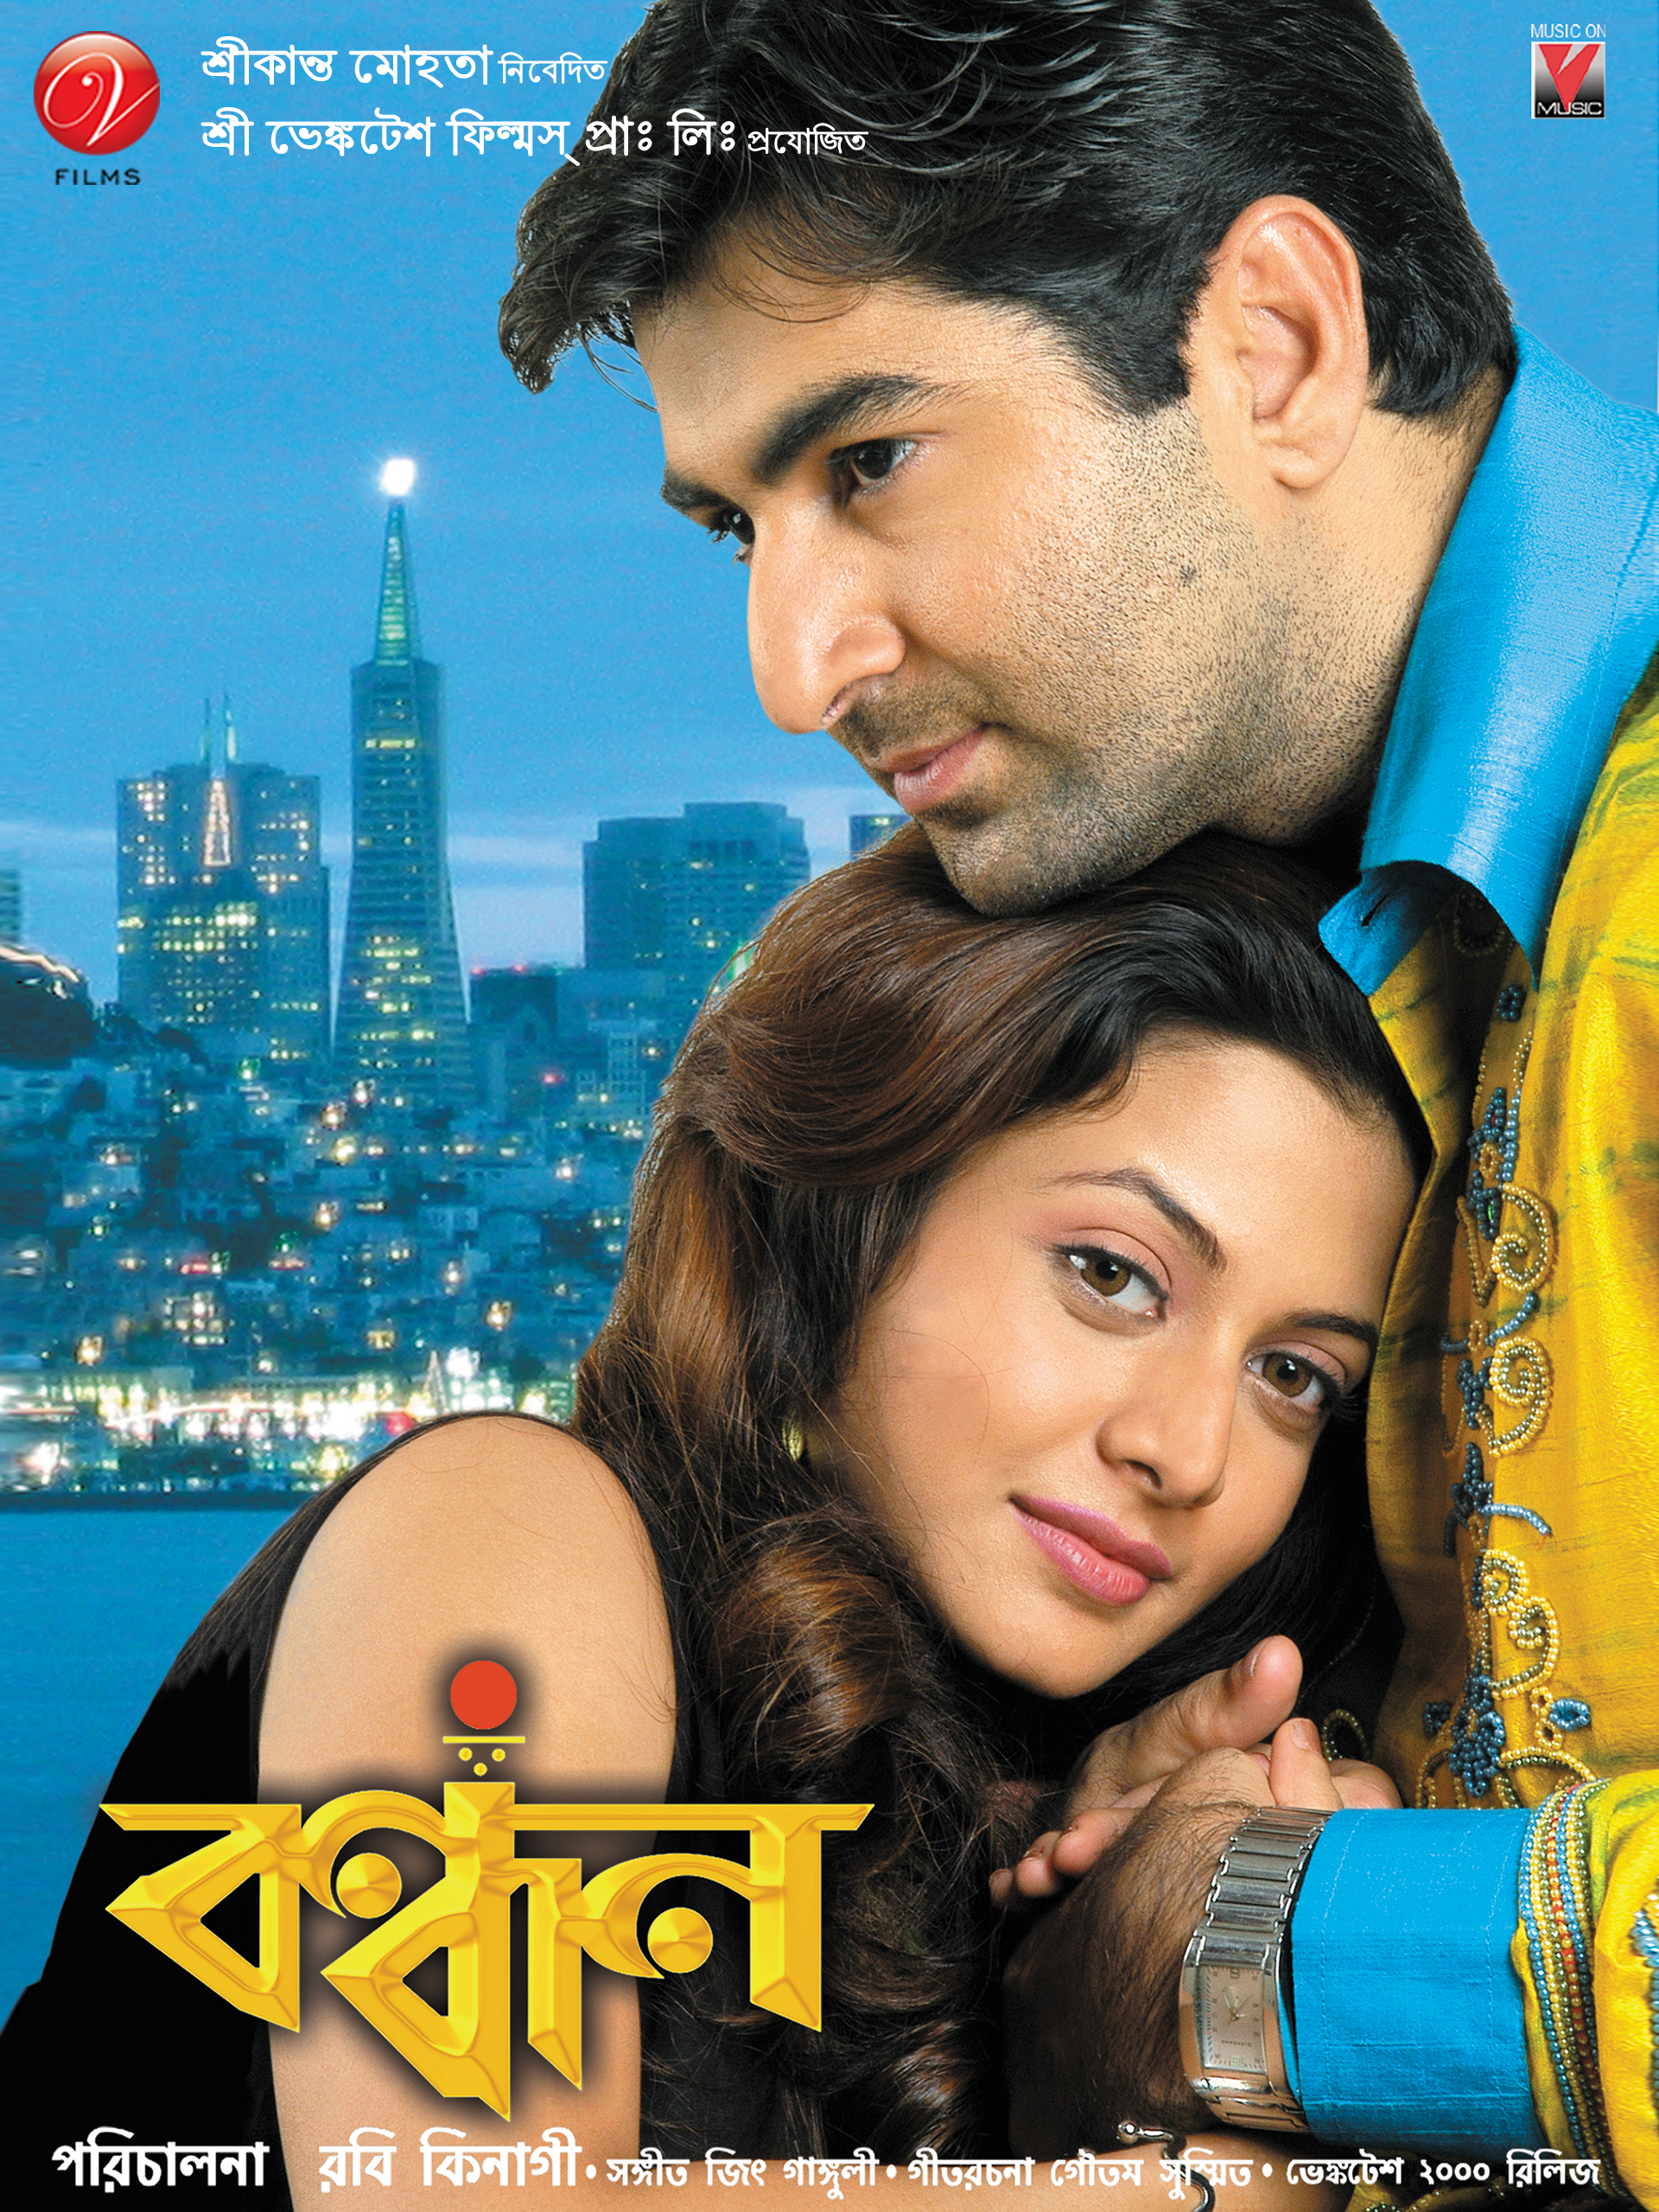 Bandhan 2004 Bengali Full Movie 480p 720p Download